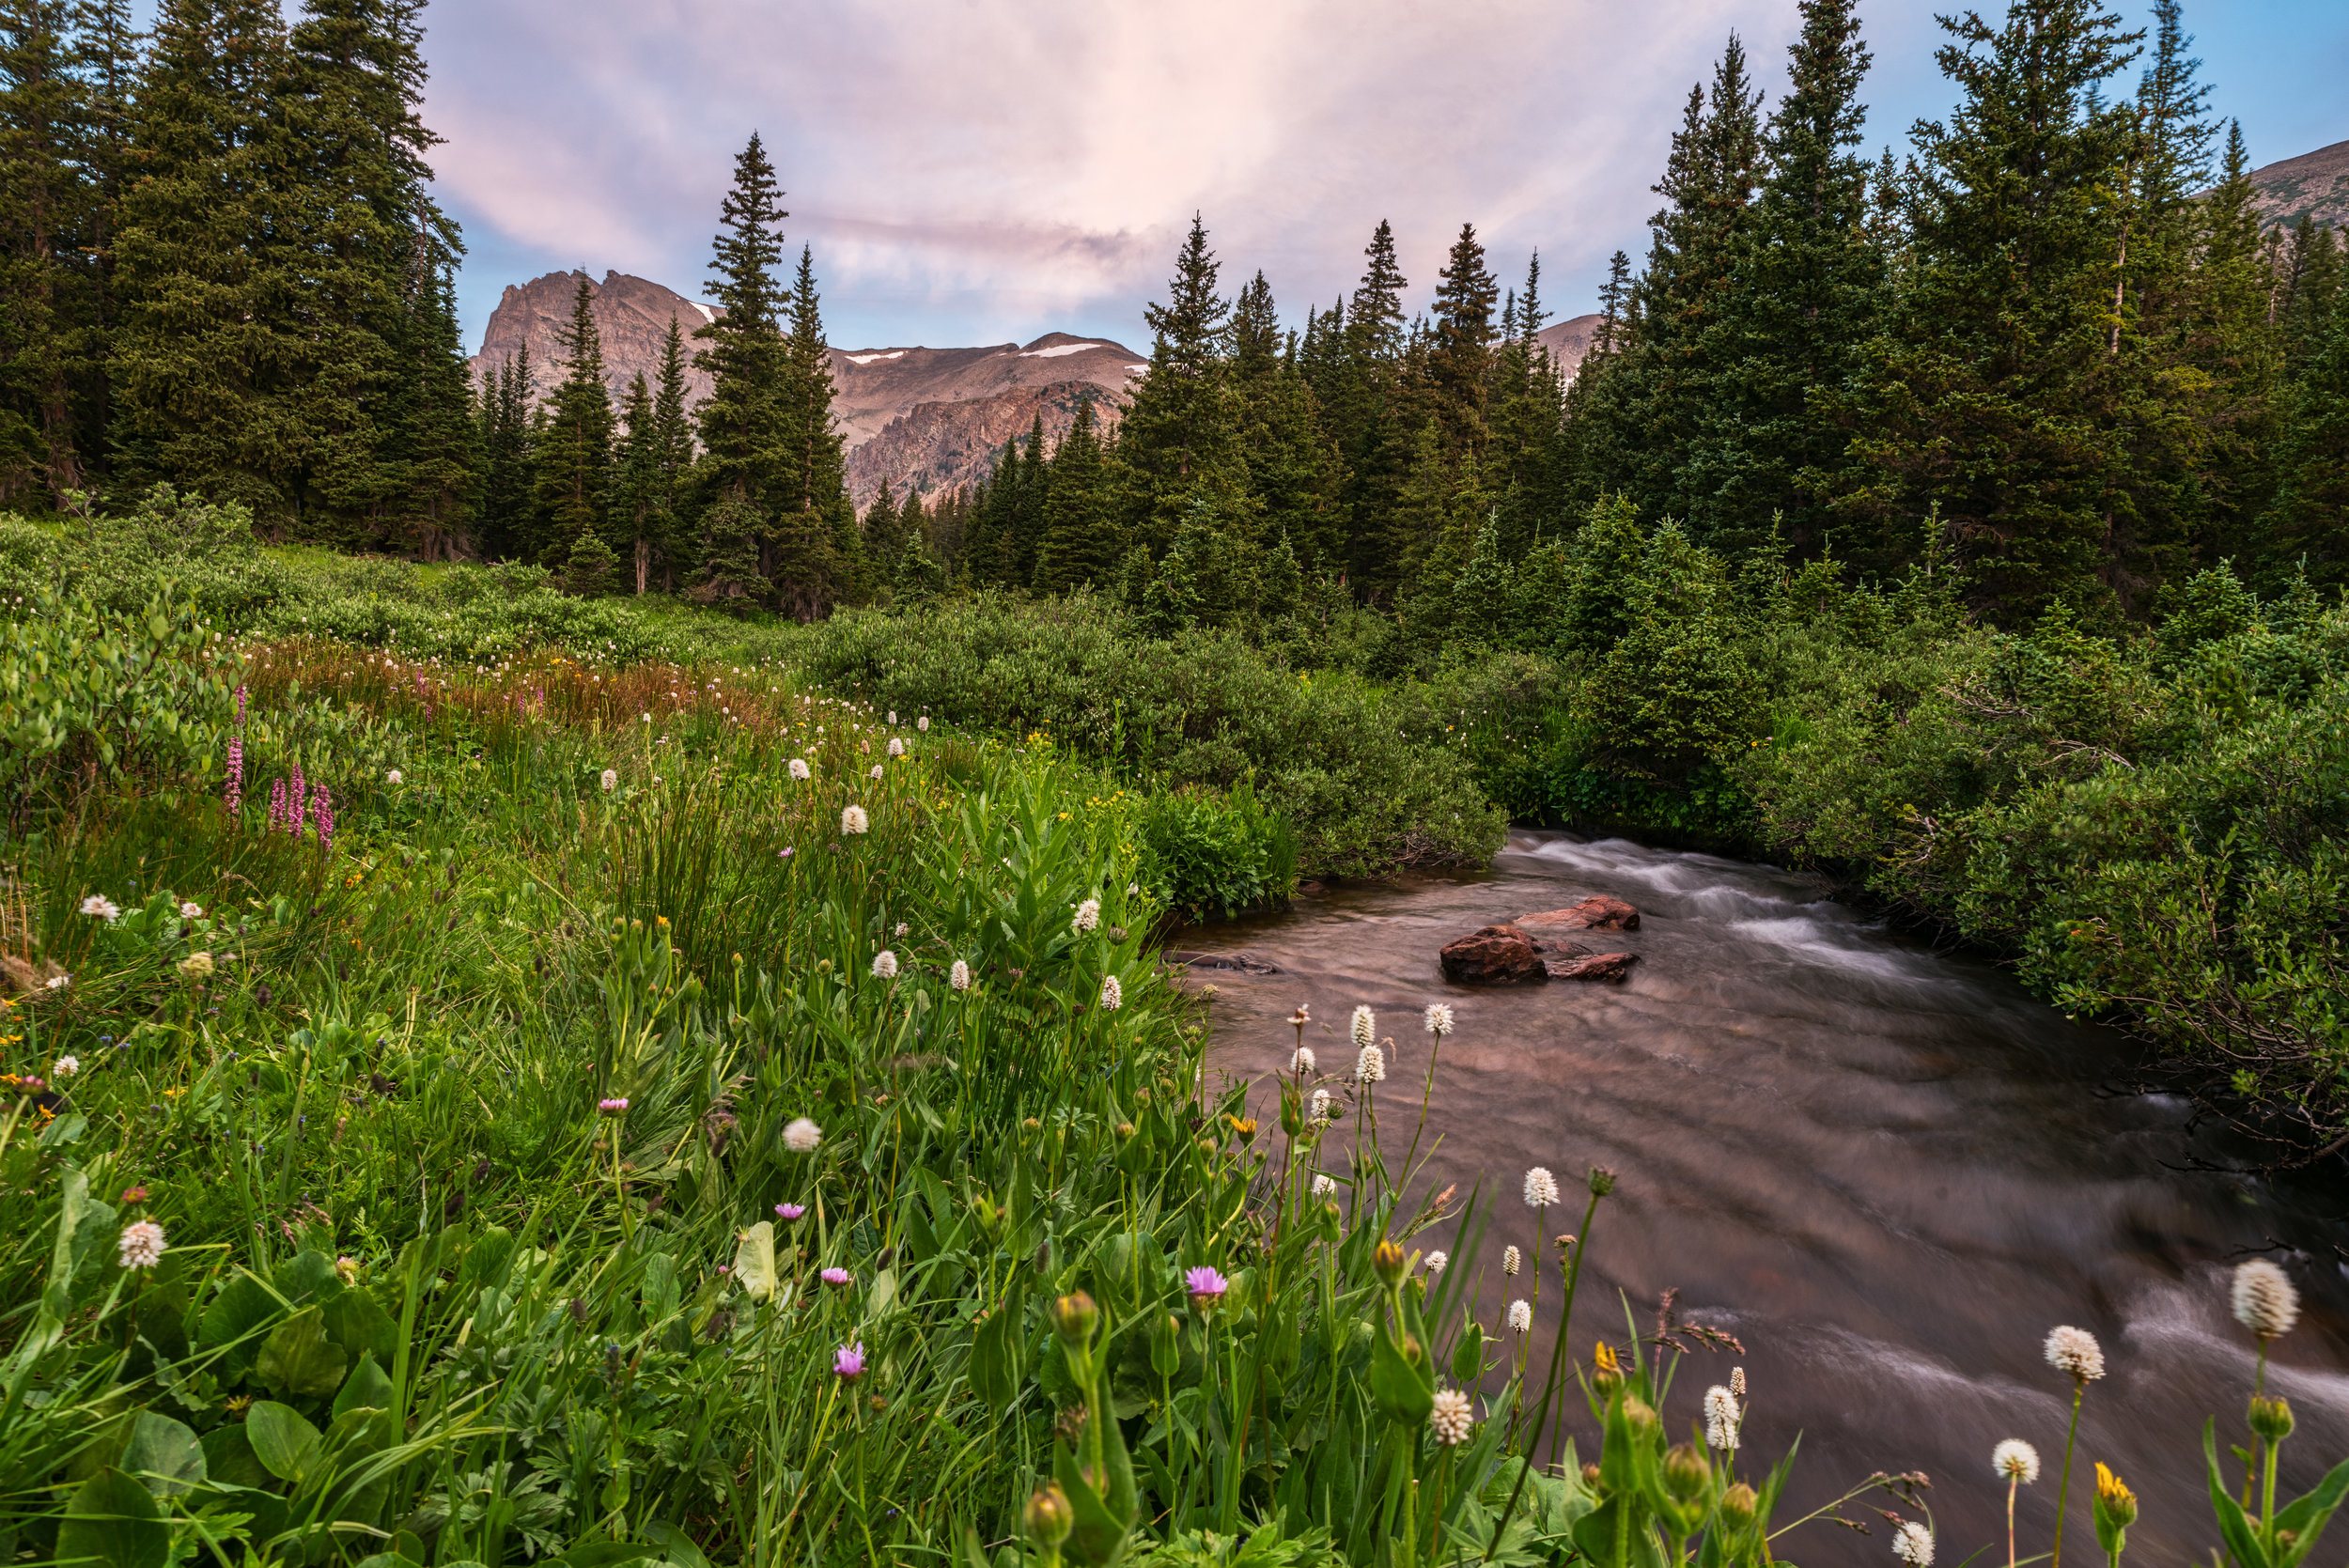 Wildflowers beside the stream flowing out of Lake Isabelle. First light was beginning to illuminate The Indian Peaks in the background.